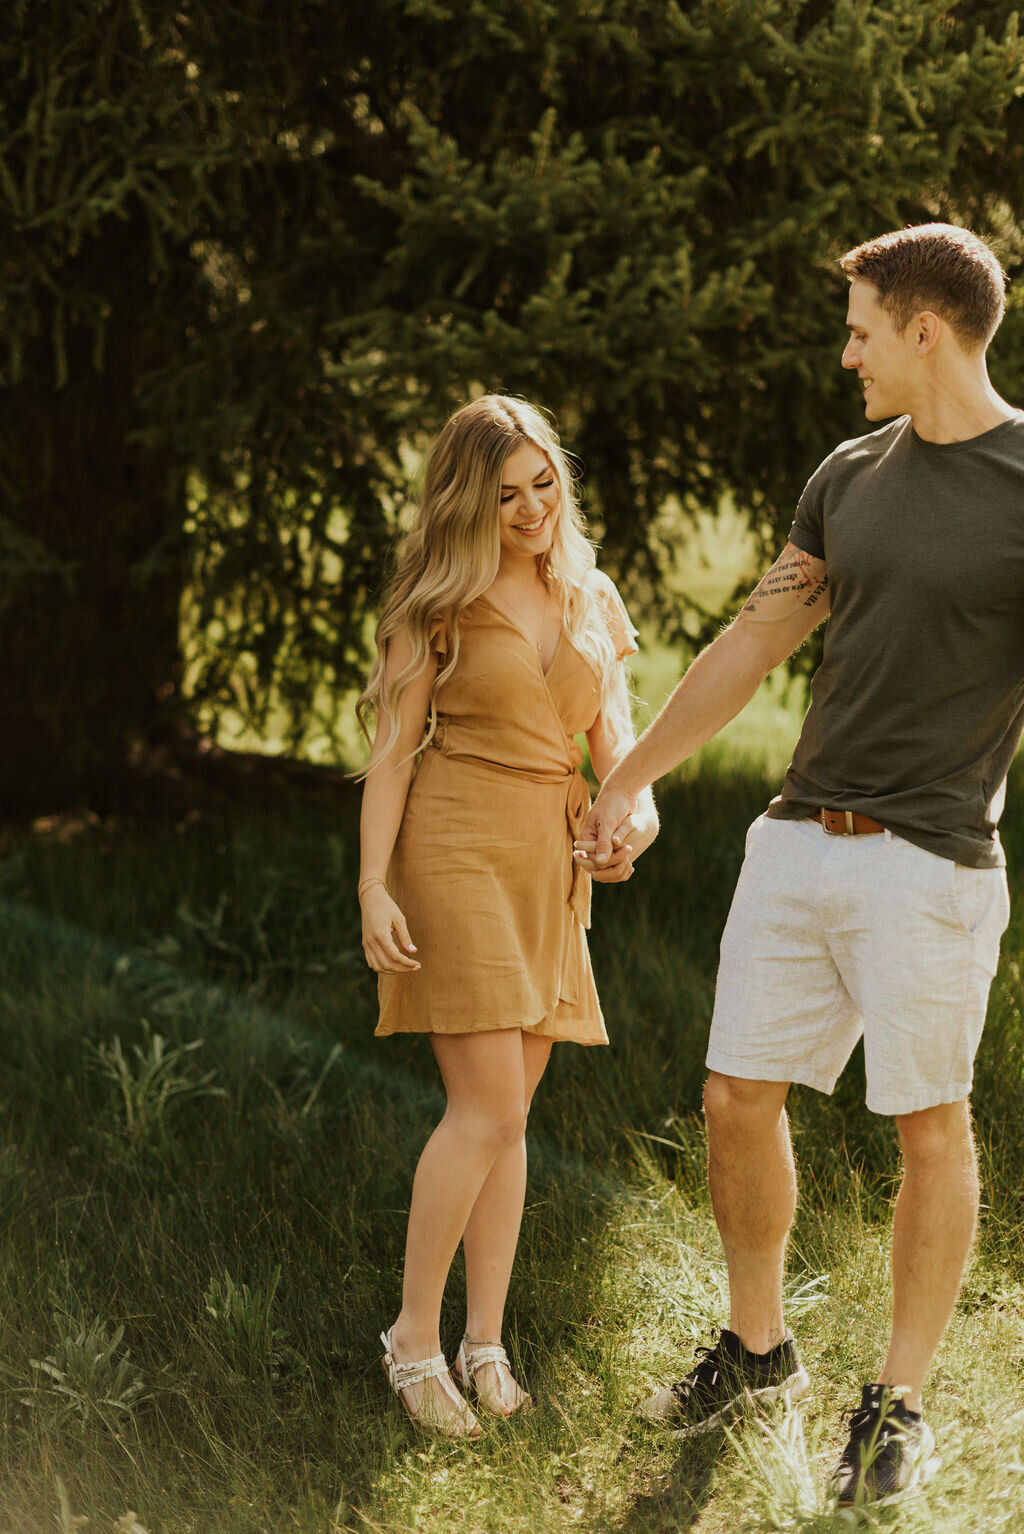 mountain-engagement-session-provo-utah-kyle-and-taylor-70.jpg